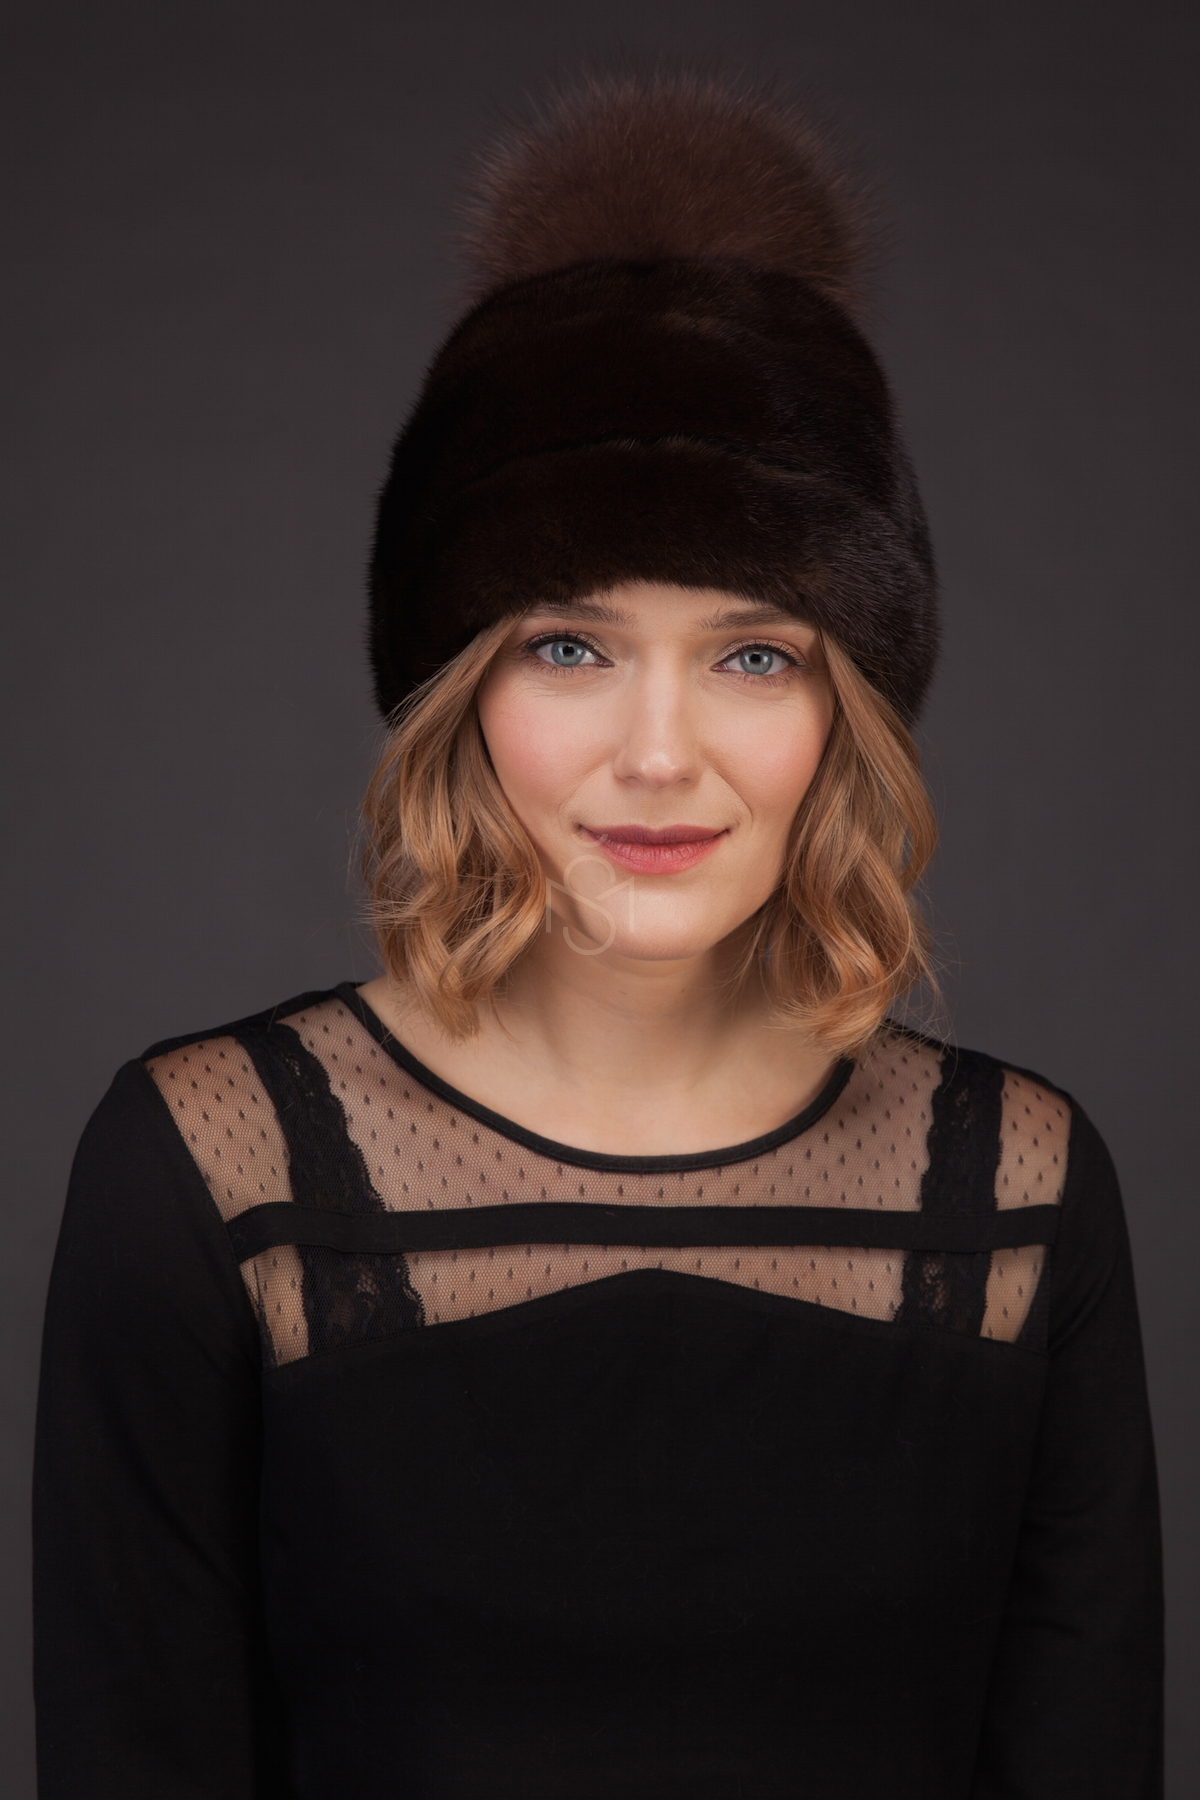 Mink fur hat with pom-pom natural brown made by SILTA MADA fur studio in Vilnius